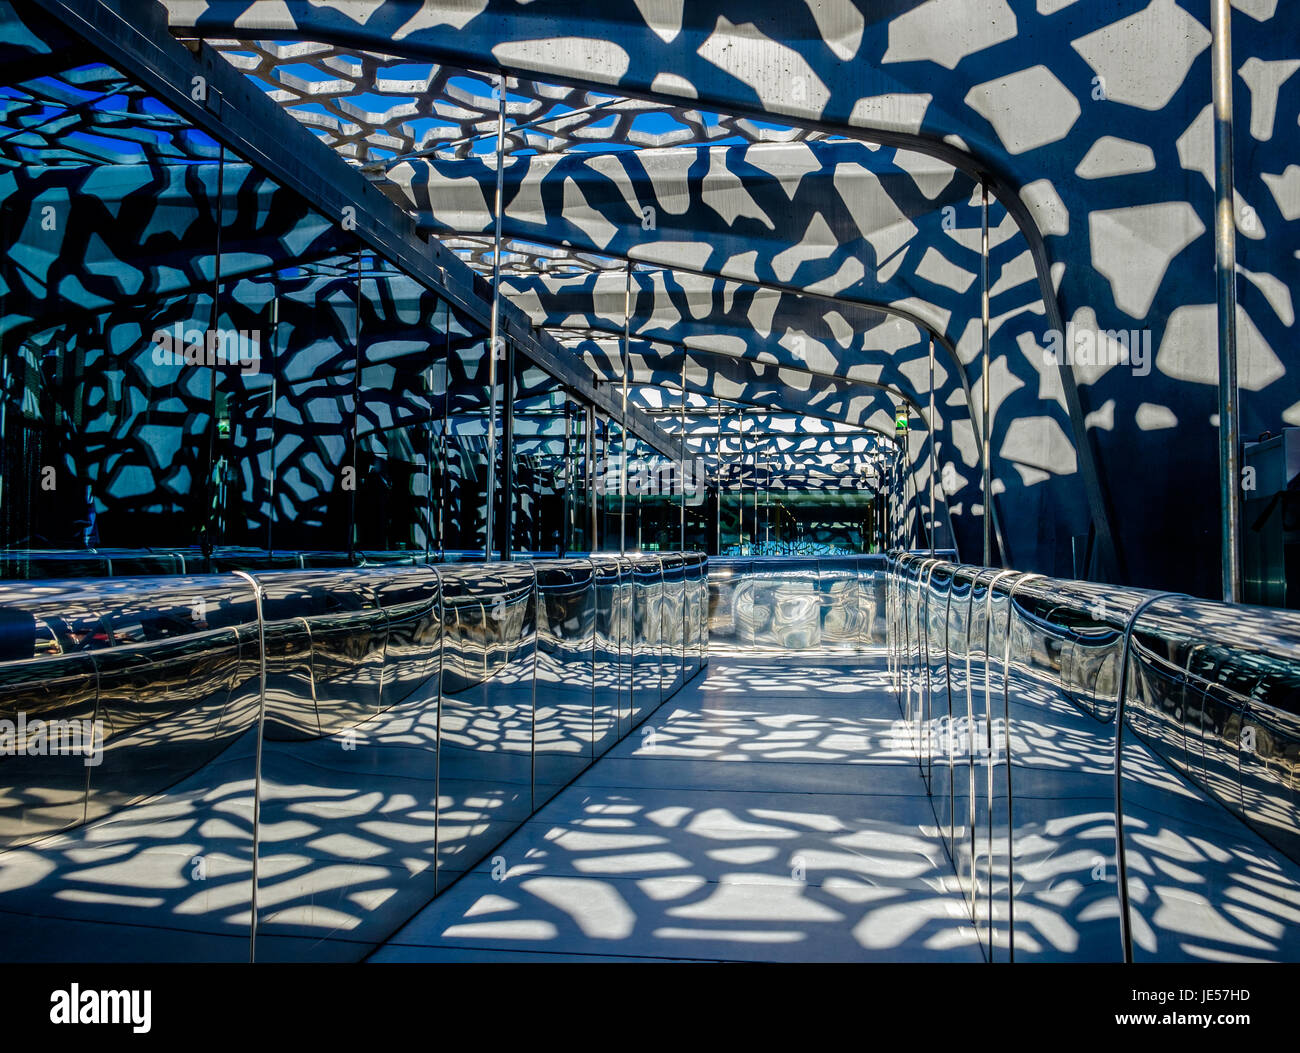 Corridor made of steel, glass,concrete lattice wall with shadow pattern creating by the sun entering the building, - Stock Image